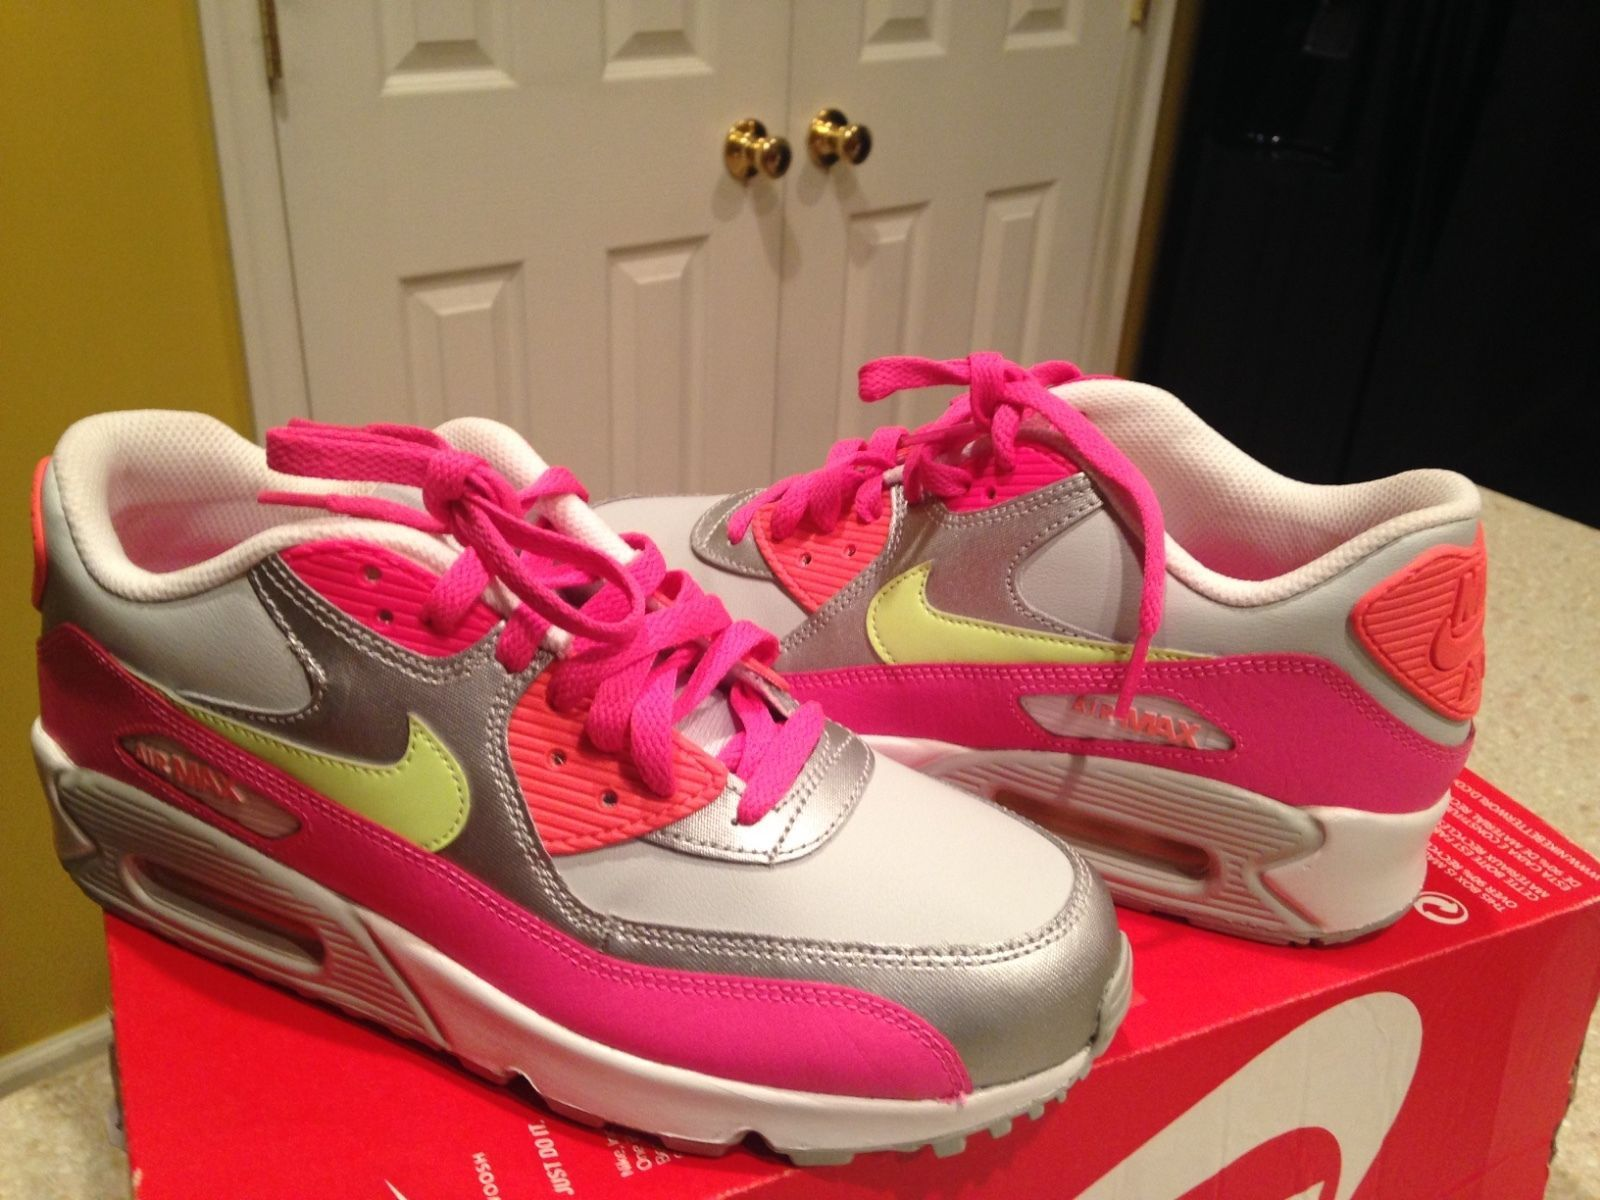 quality design 7f667 d0e1a Nike Air Max 90 LTR (GS) 724852 001 size and 50 similar items